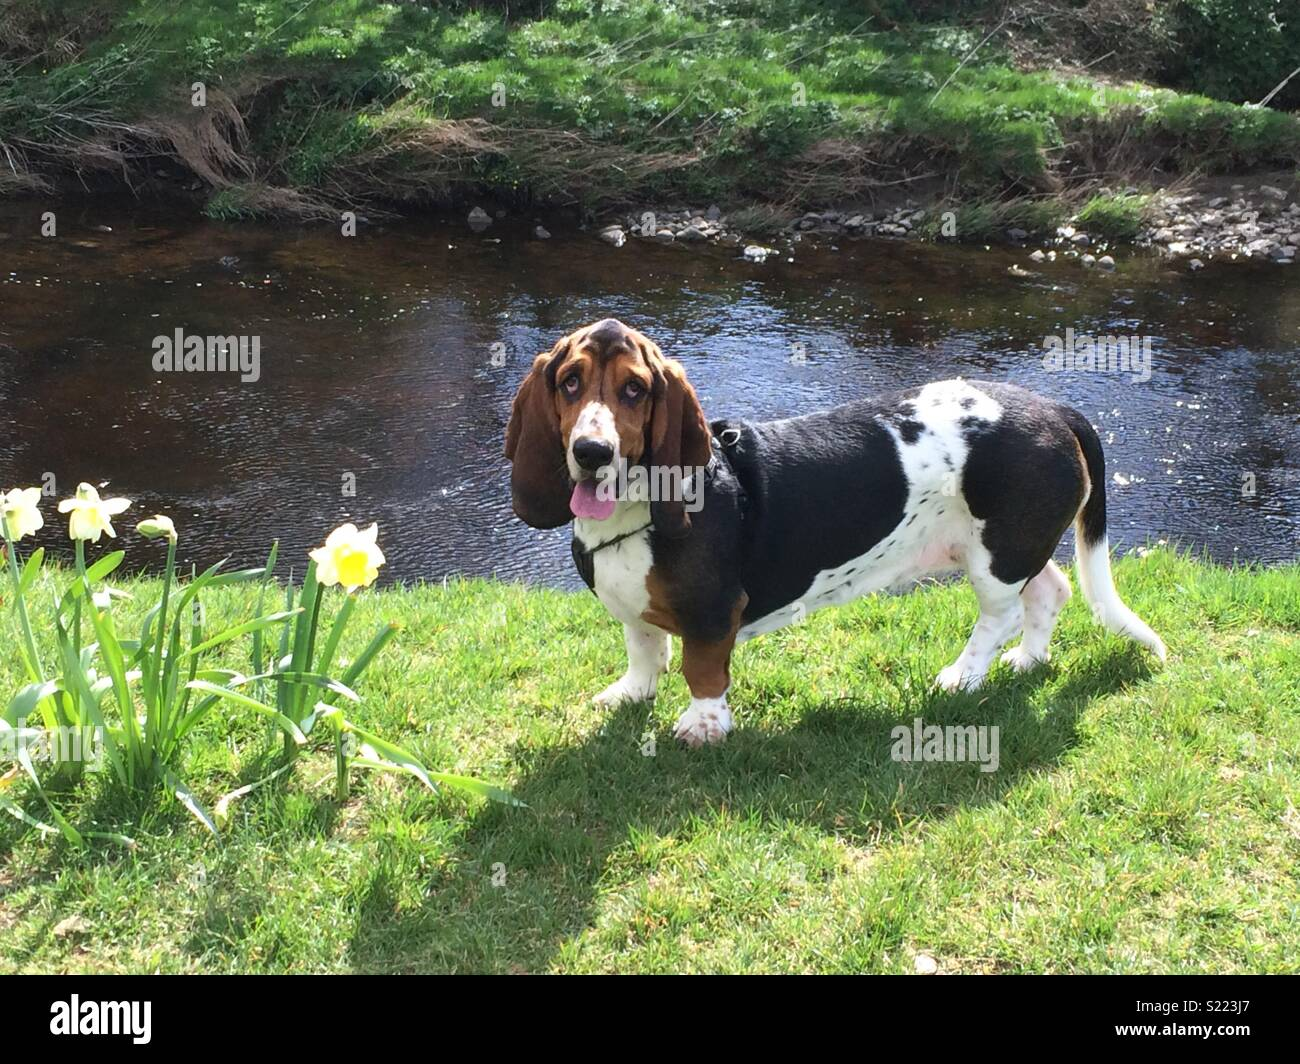 Daisy the basset hound enjoying a riverside spring walk in Londonderry. - Stock Image